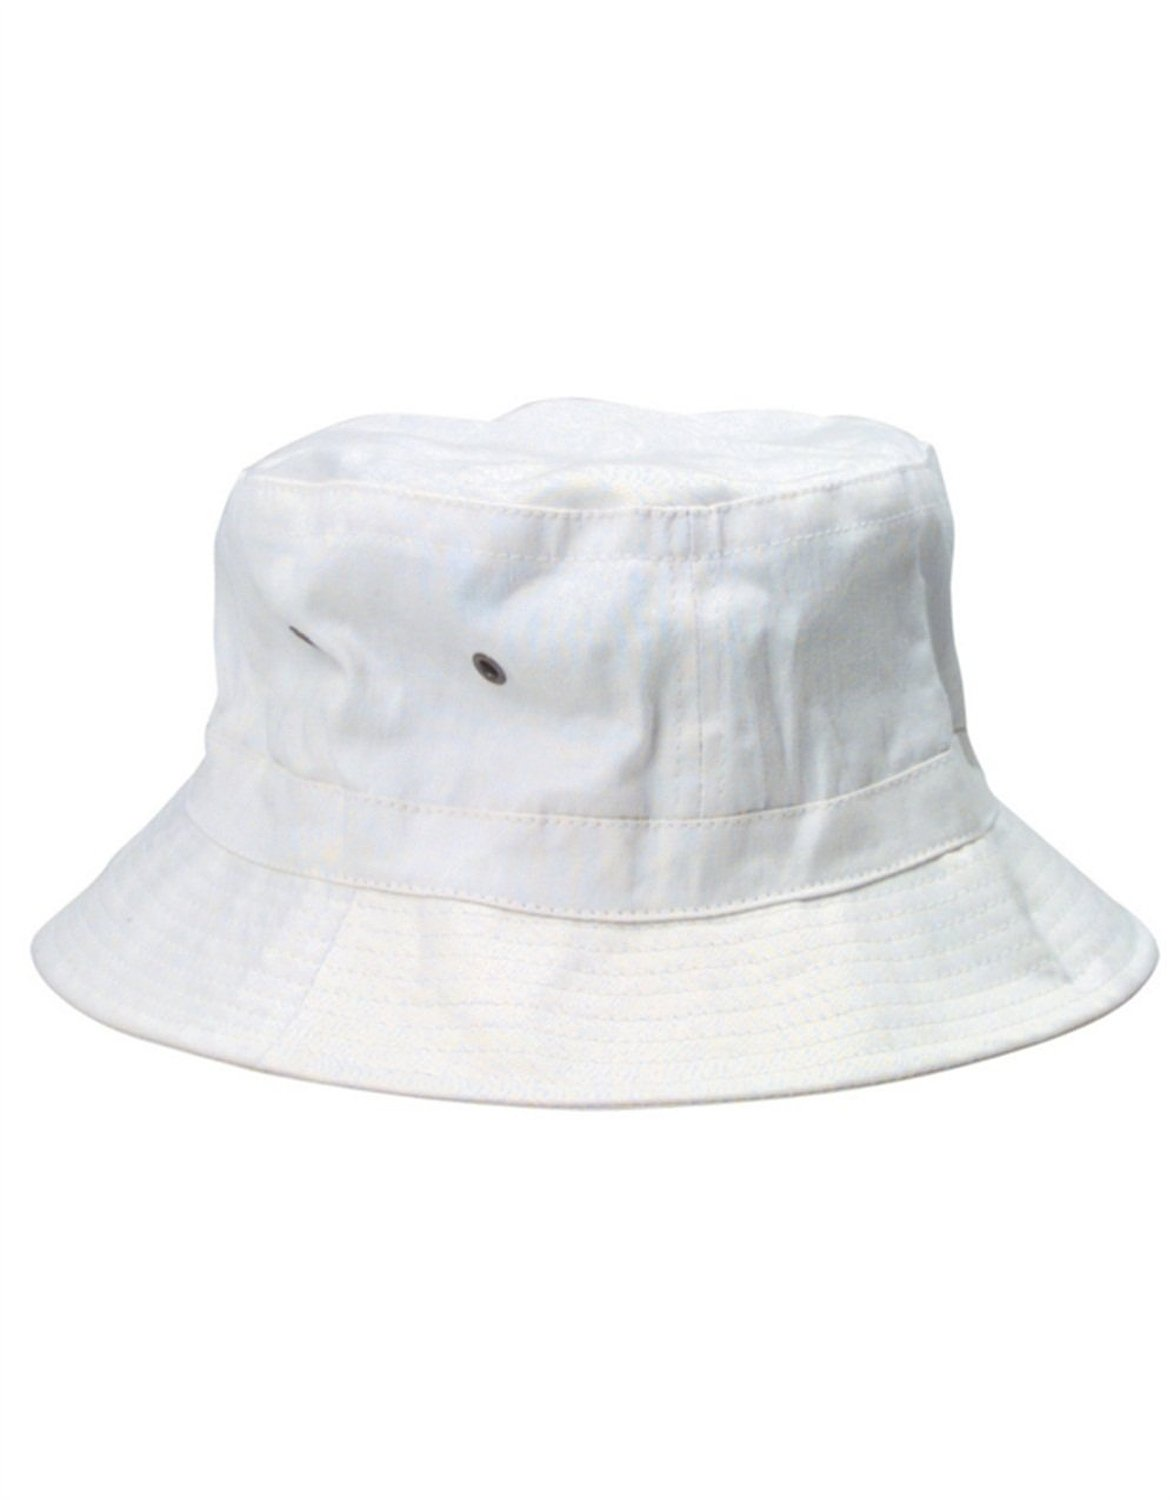 Bucket Hats Black And White White Bucket Hats